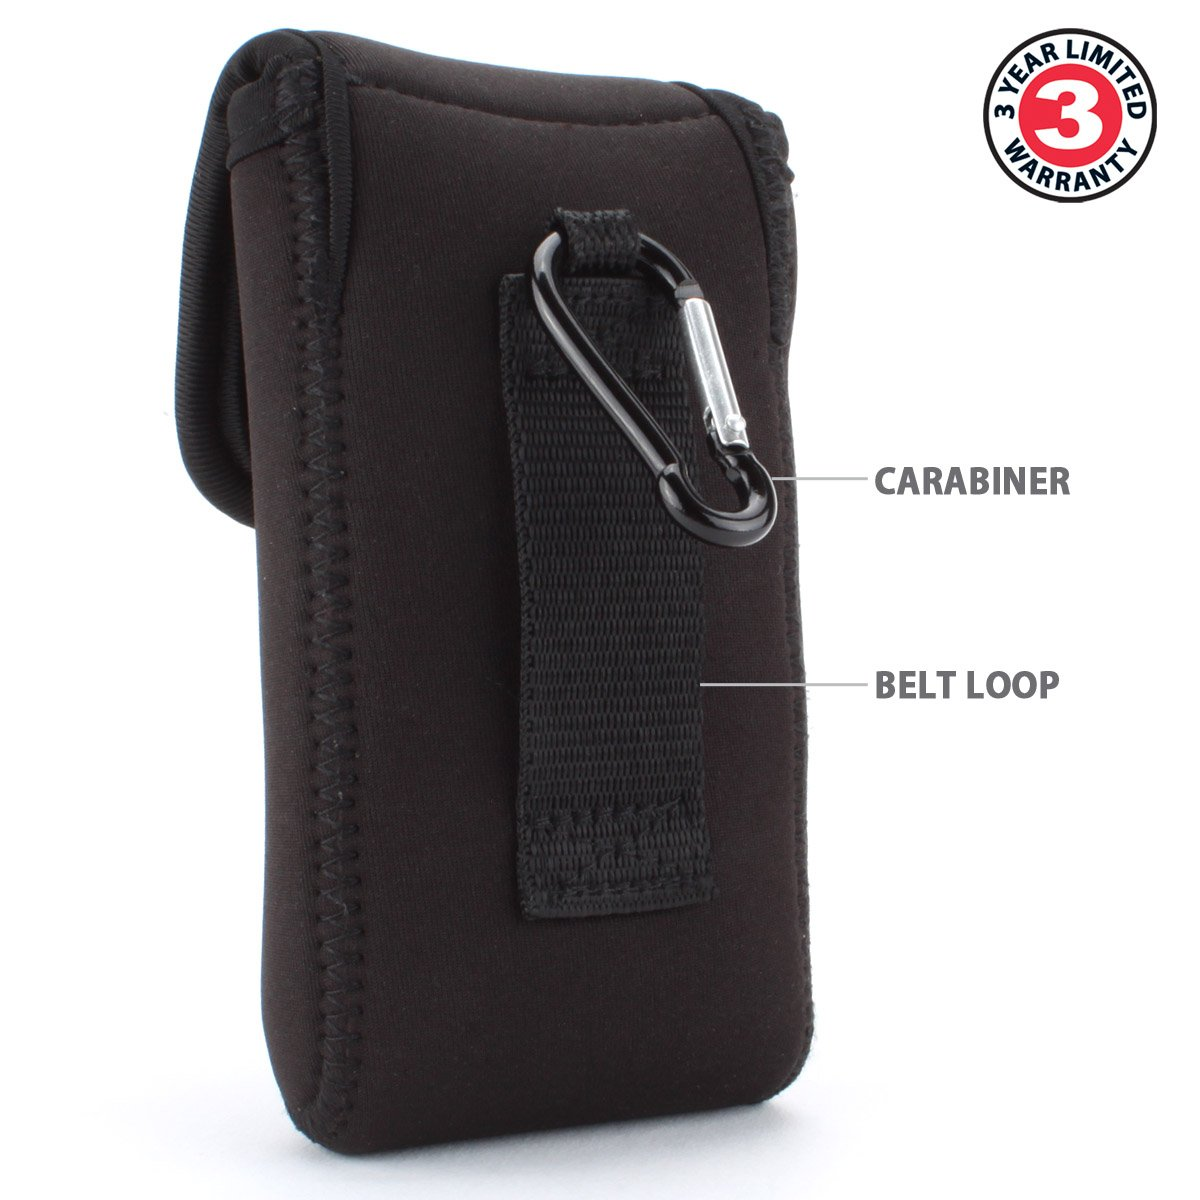 USA Gear Portable Handheld GPS Carrying Case w  Carabiner Clip- Works for  Garmin nüvi 2475LT  aa86abf4c15